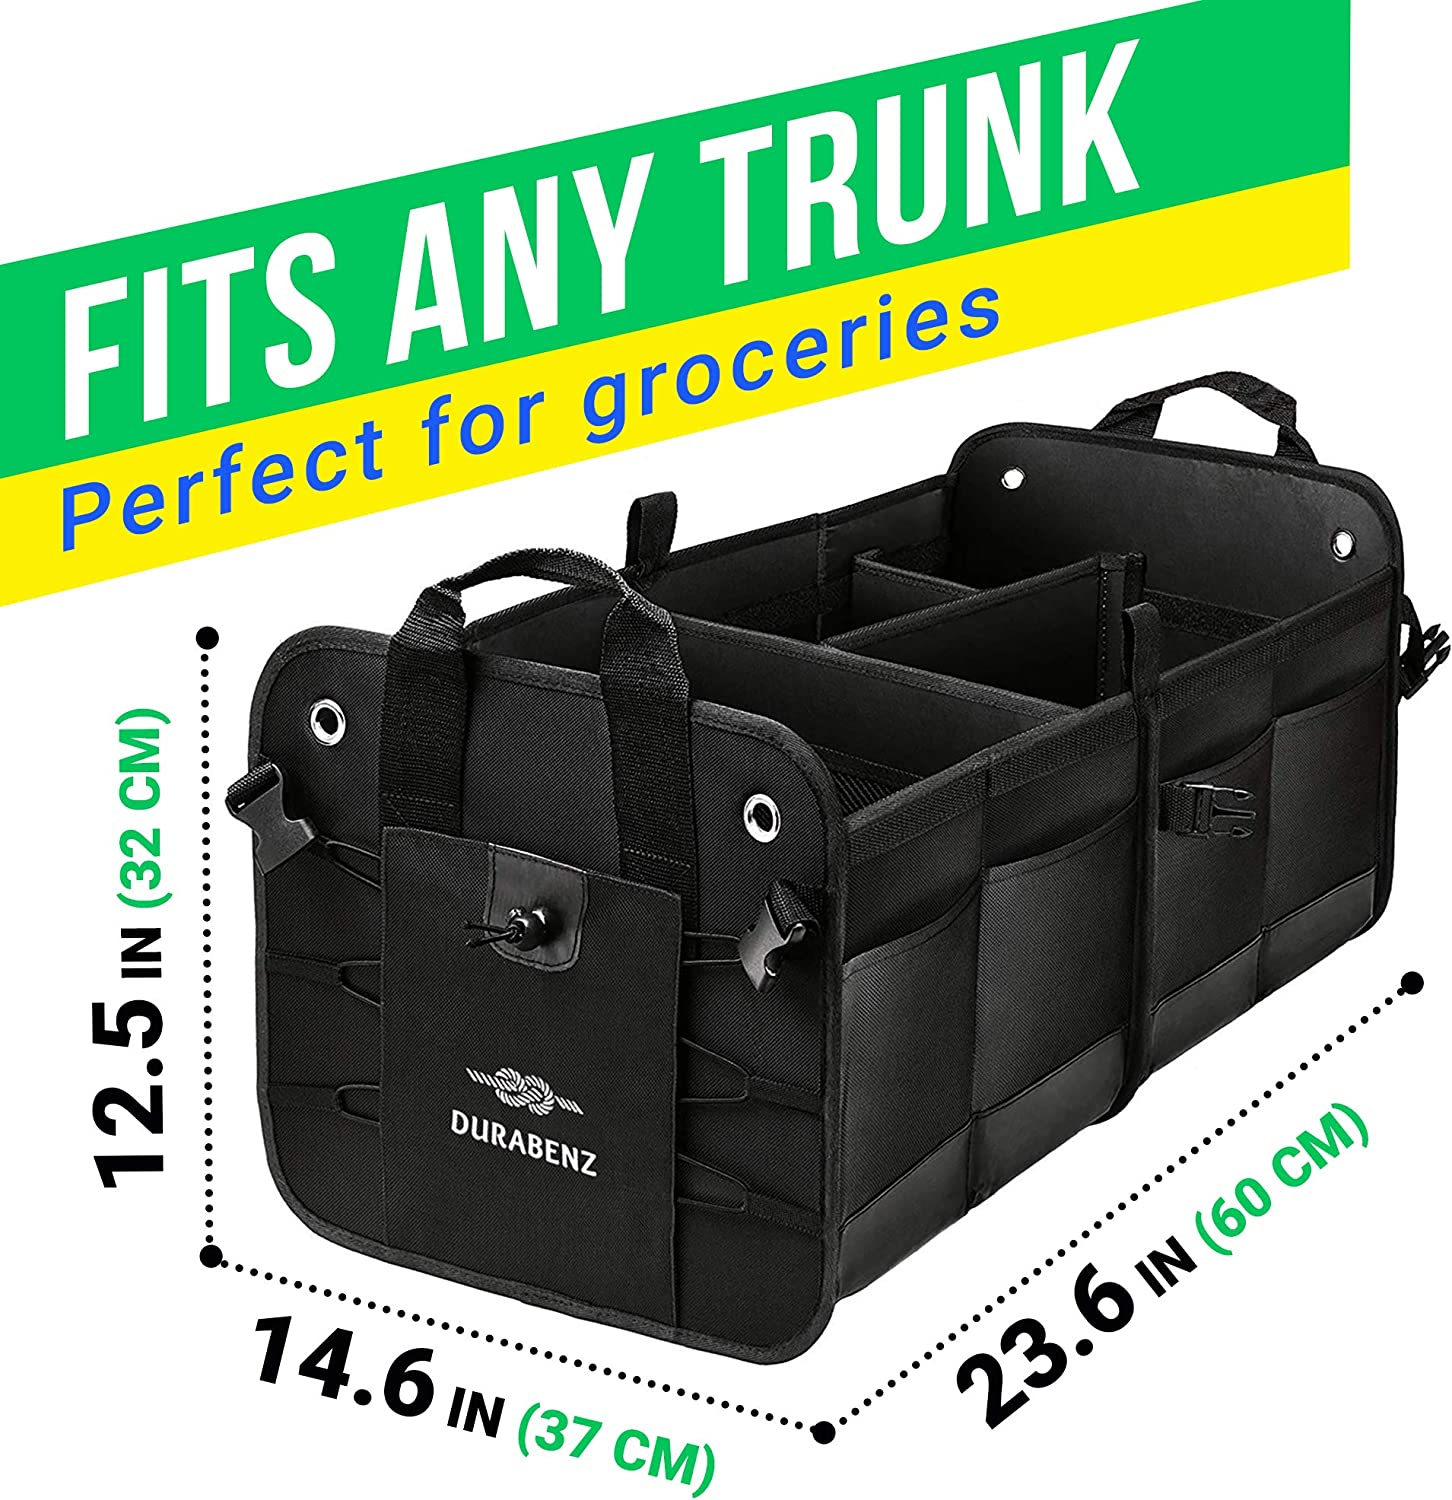 and Stainless Hooks Attachable Non-Slip Pads Military Green Durabenz Trunk Organizer with Covering Net